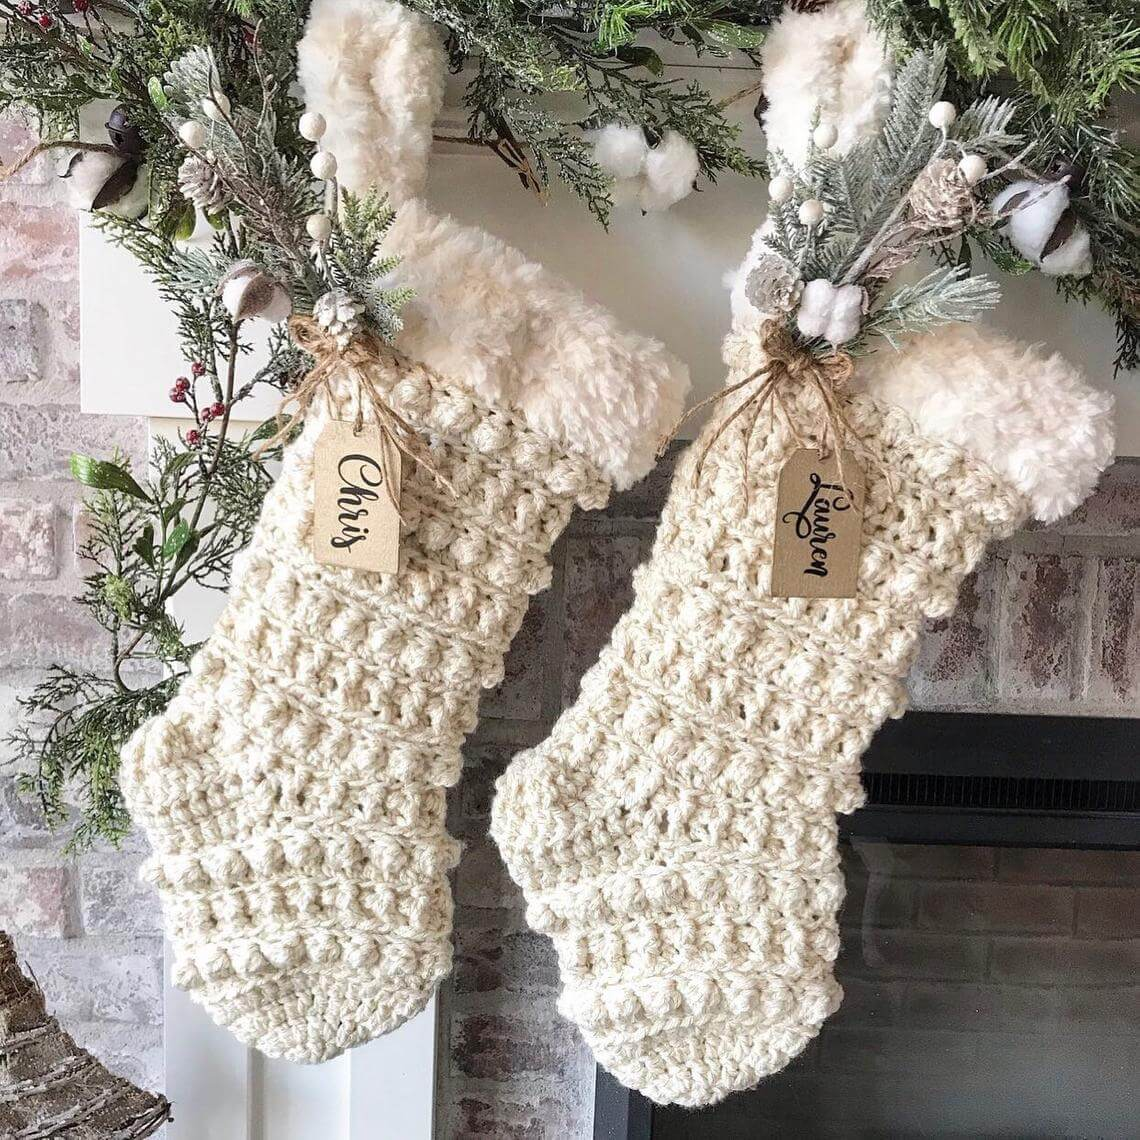 Rustic Crocheted Stockings with Greenery Included